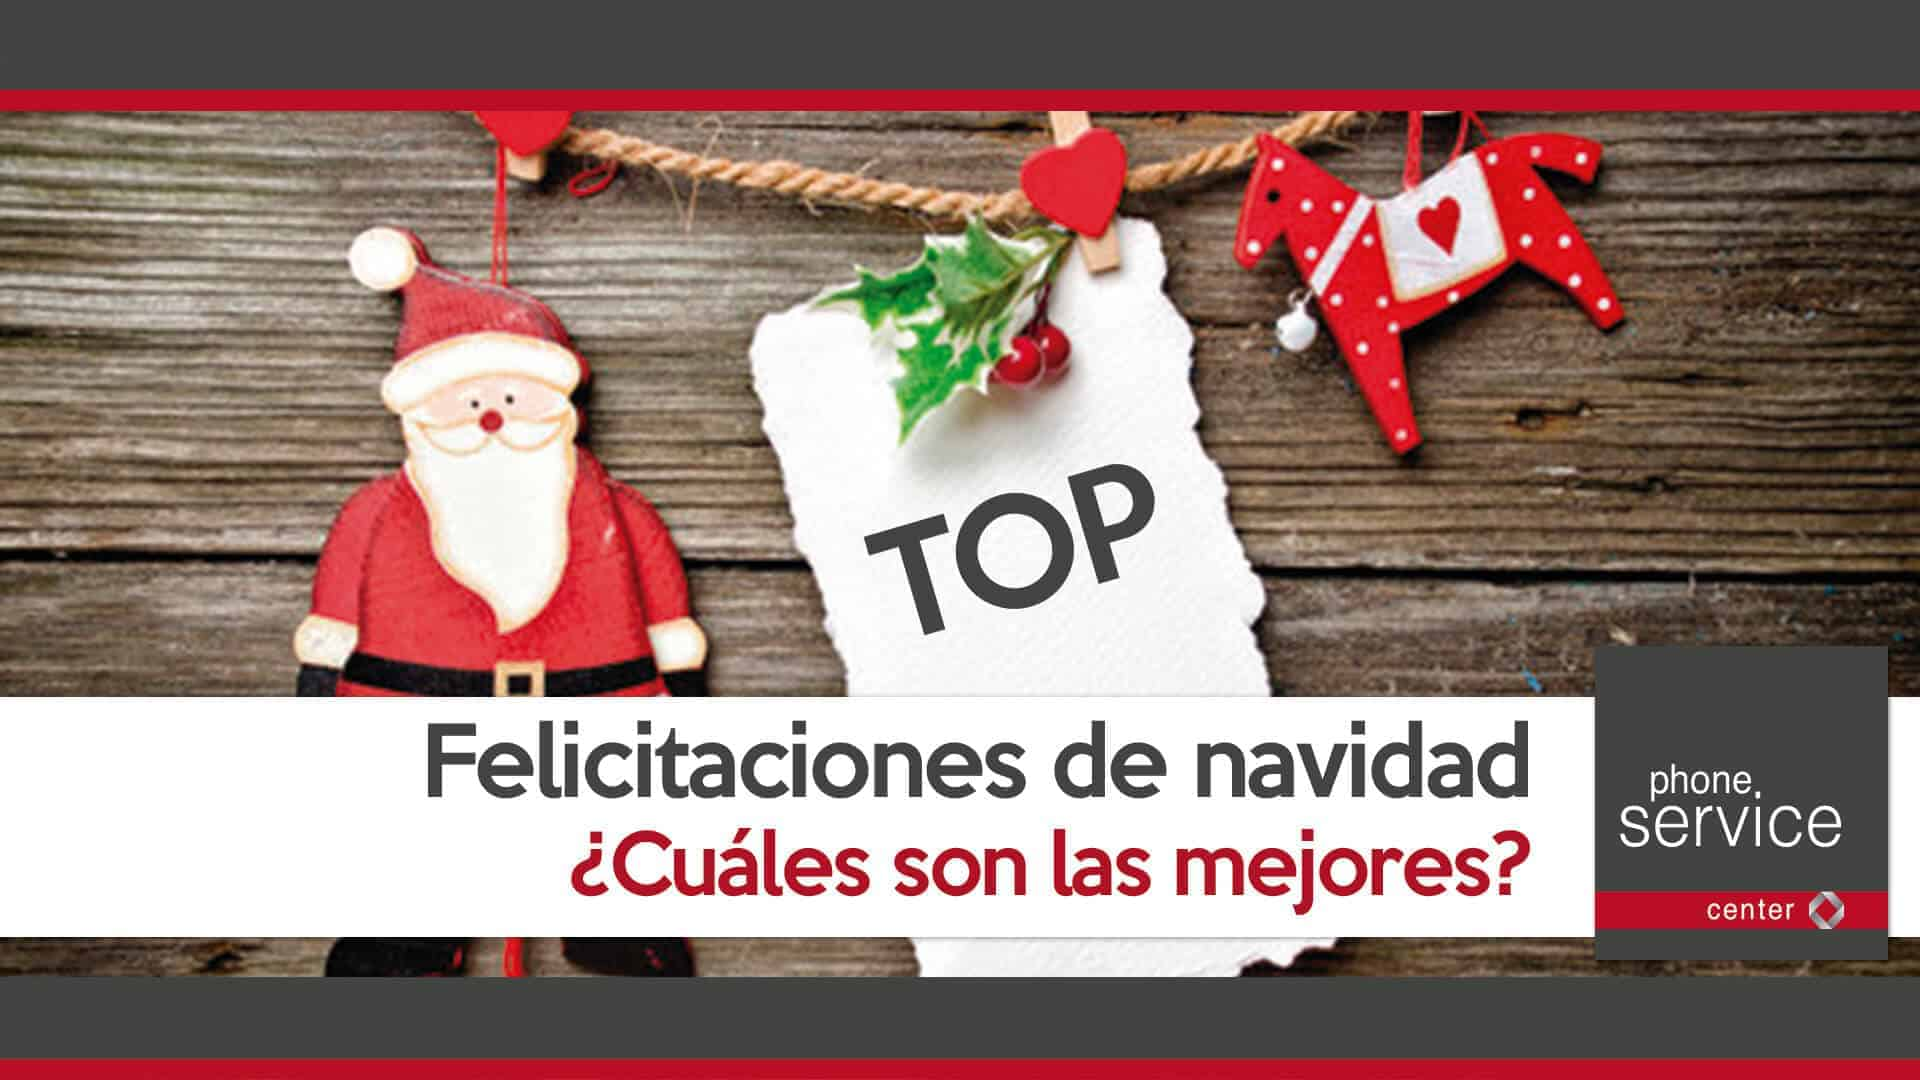 Las Mejores Felicitaciones Para Esta Navidad. Sprinkler Installation San Antonio. New York State Title Insurance. Banks In Beaverton Oregon Cruise For A Cause. Motorcycle Insurance Cheapest. Large Cap Stock Index Fund Email Sender Score. Sets Tankless Water Heater Honda Dealers Gta. In Home Internet Providers Plumbing Eagan Mn. How To Apply For Life Insurance